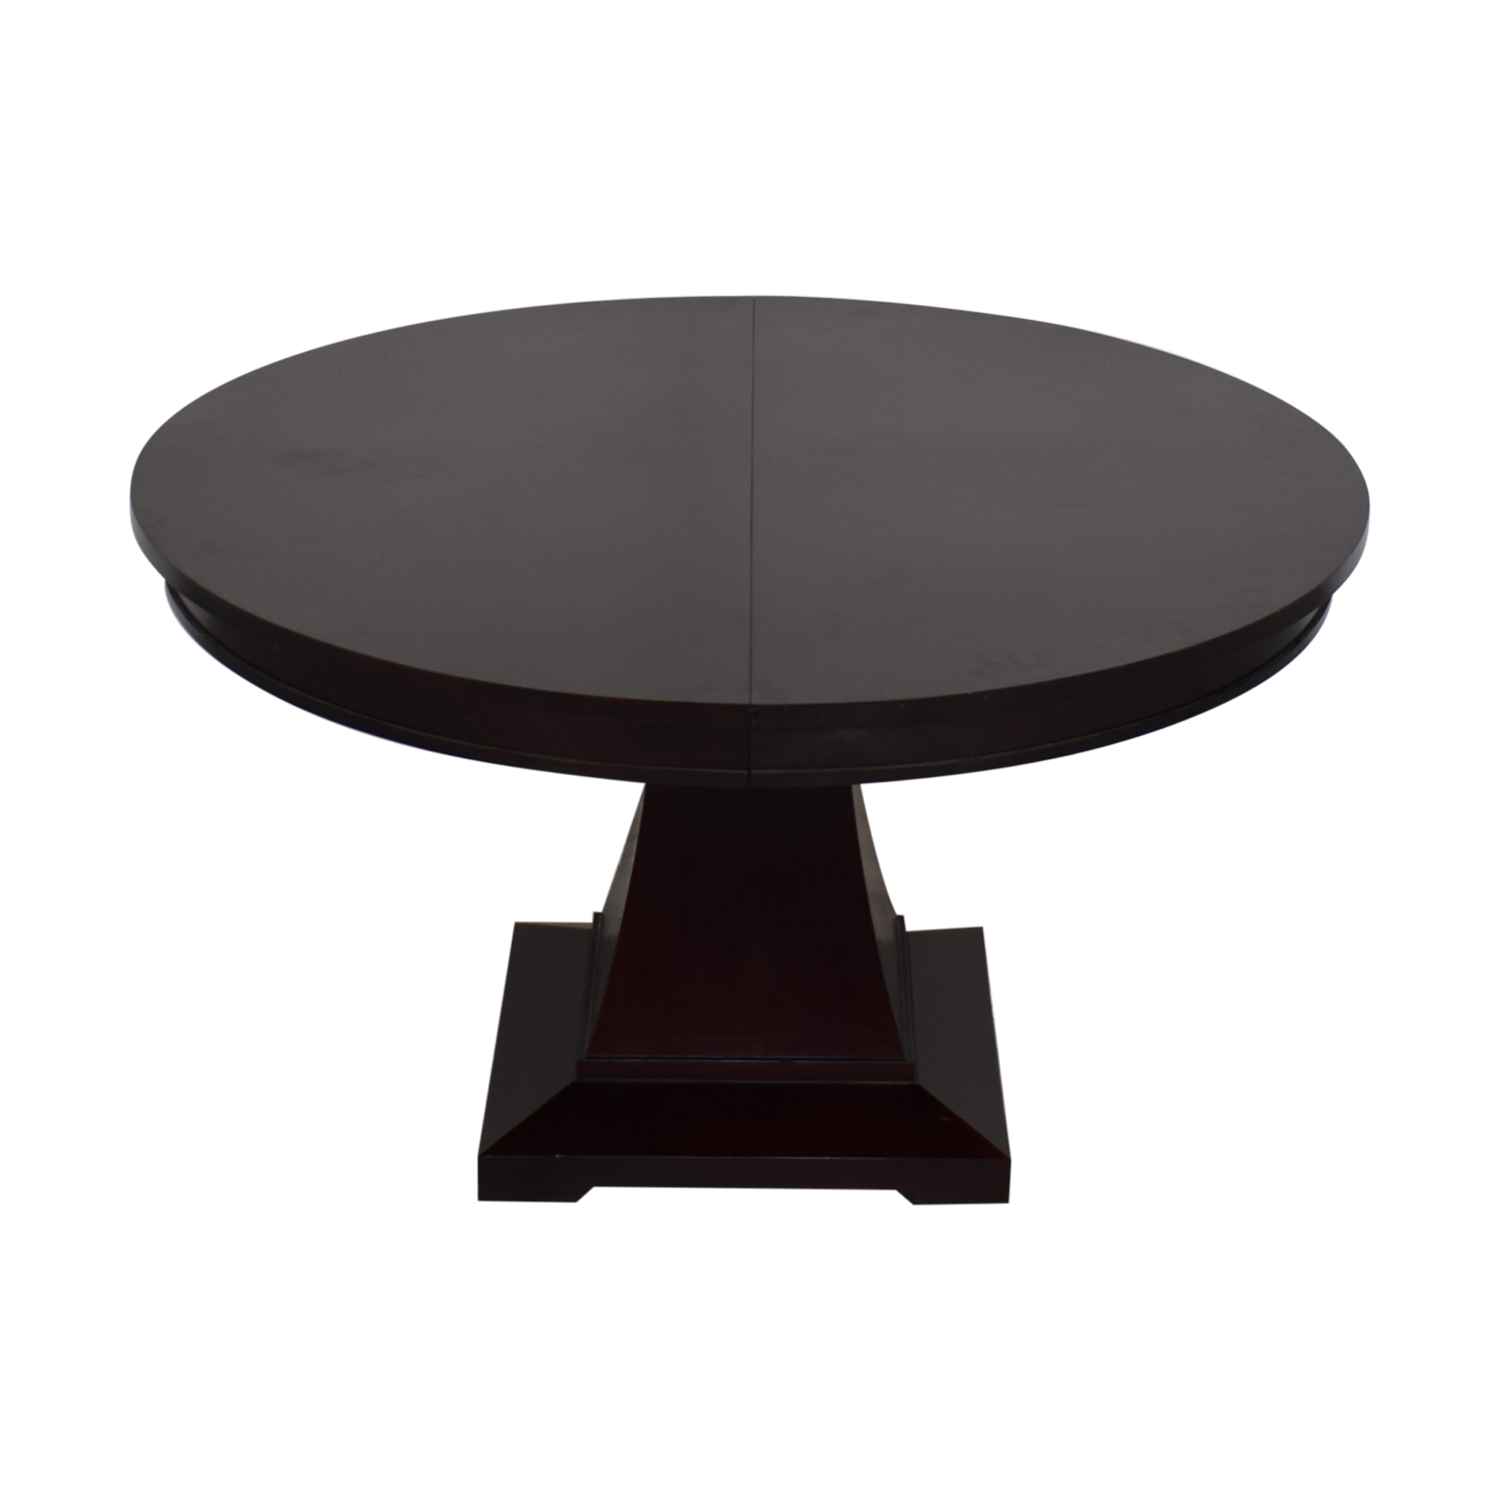 Crate & Barrel Dining Table / Dinner Tables